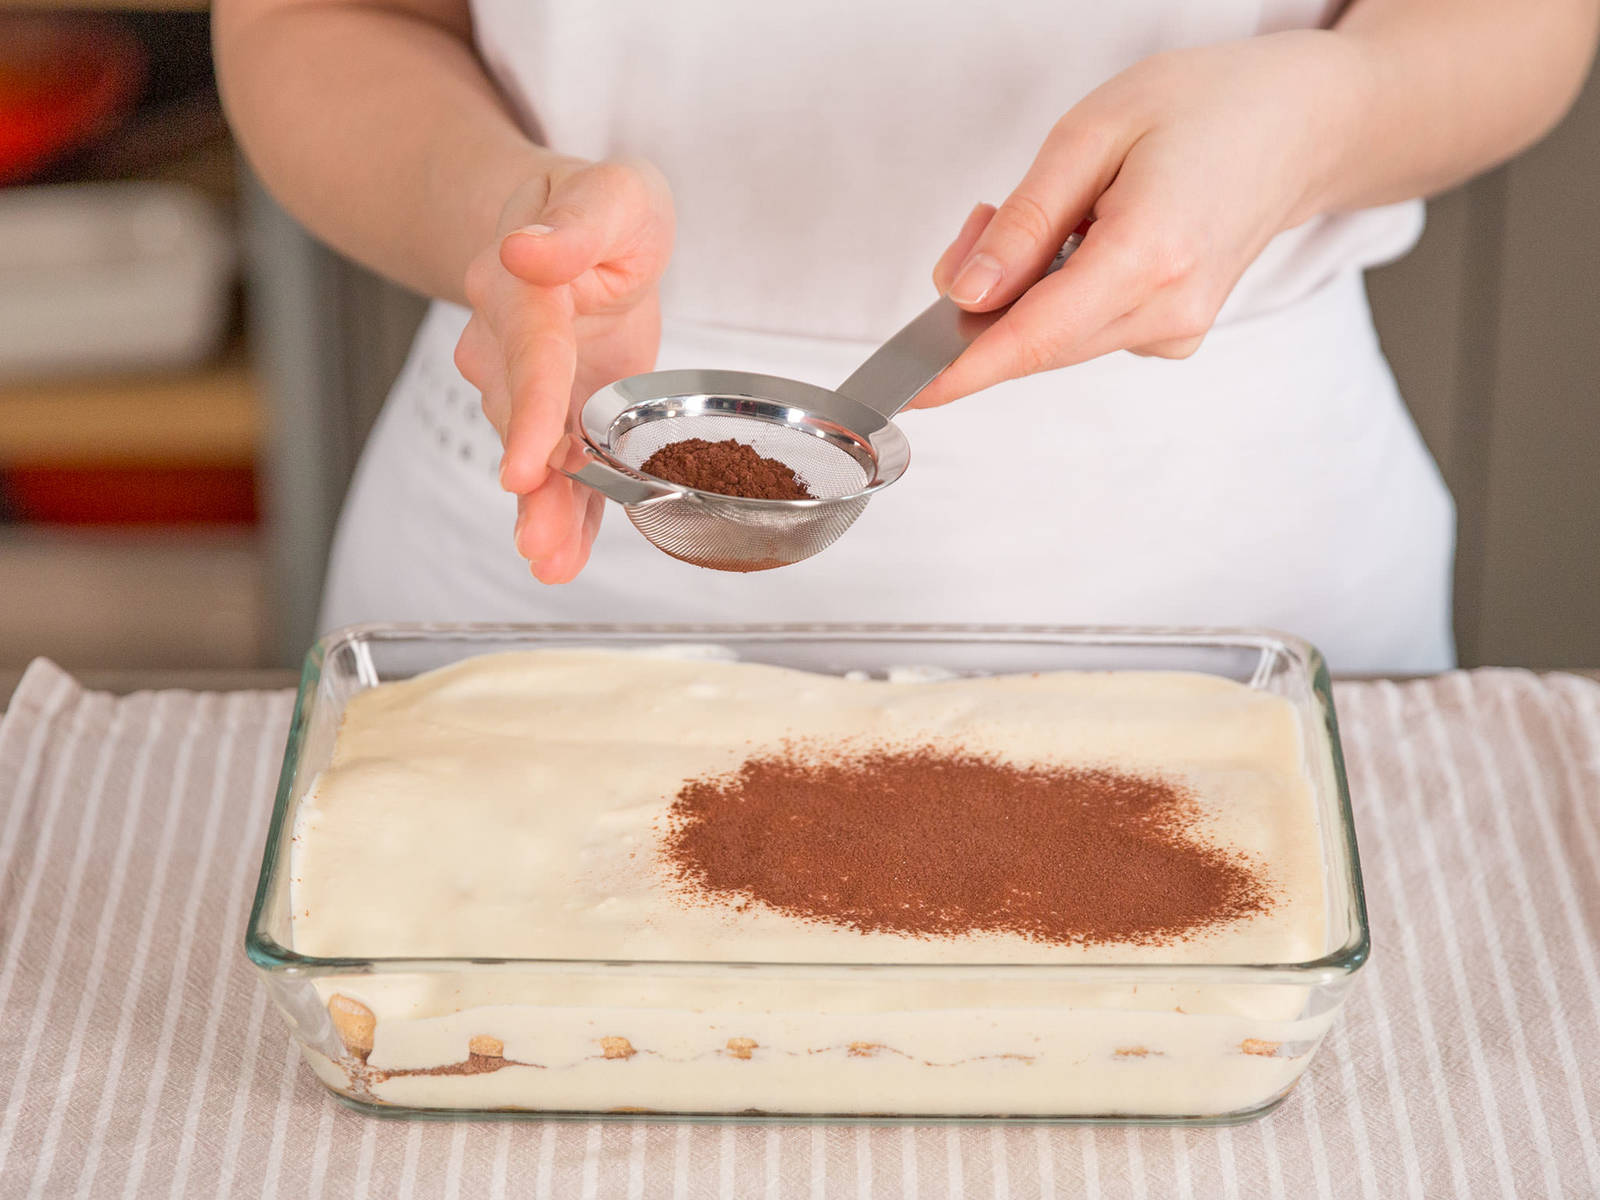 Repeat layering process until all ingredients are used up. Finish up with a layer of mascarpone cream and dust with unsweetened cocoa powder. Refrigerate for at least 3 hours before serving.